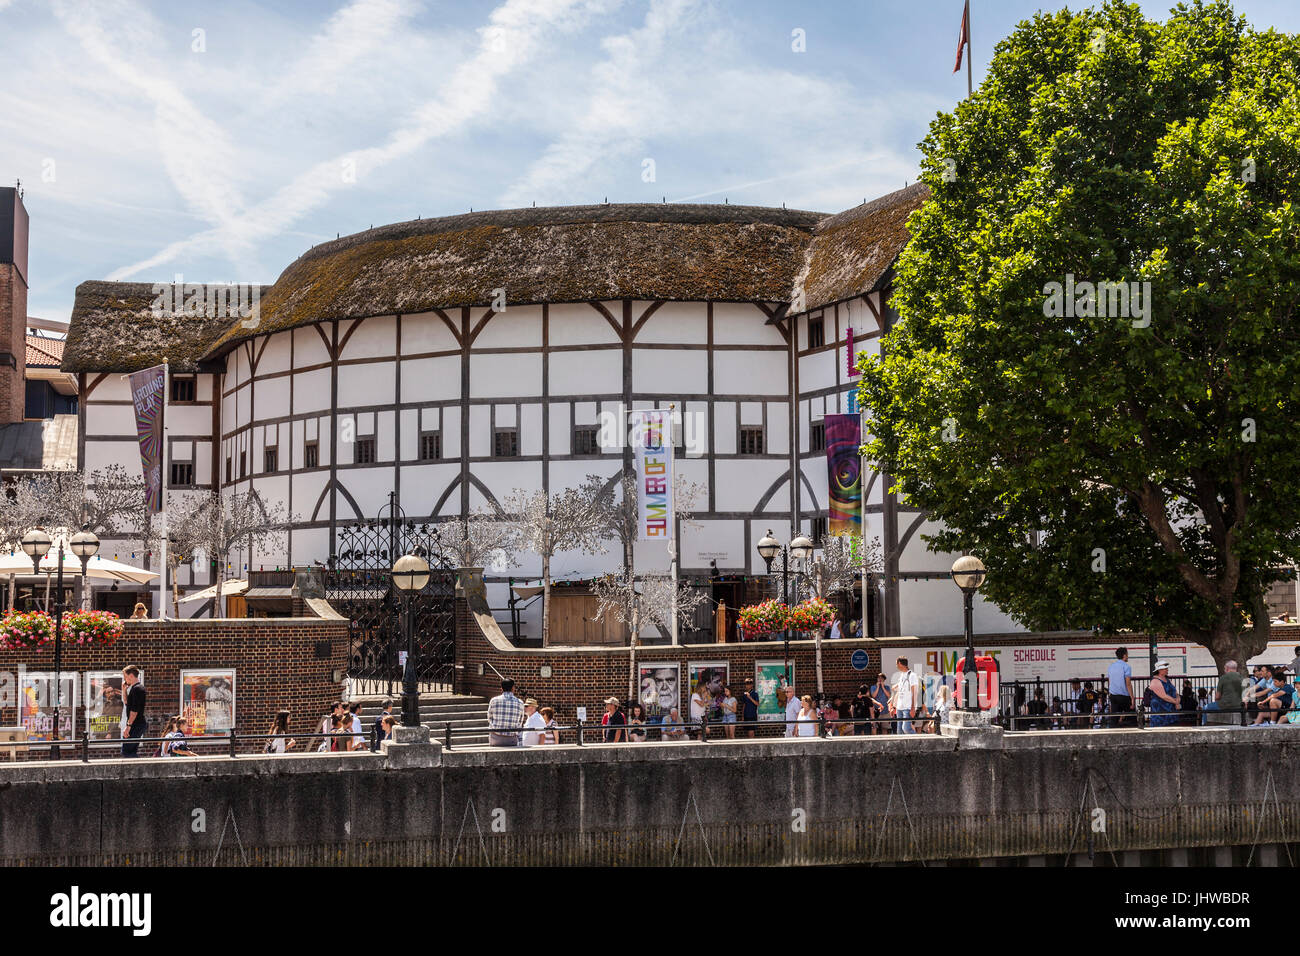 People on Bankside, the River Thames waterfront in front of Shakespeare's Globe Theatre, central London, on - Stock Image